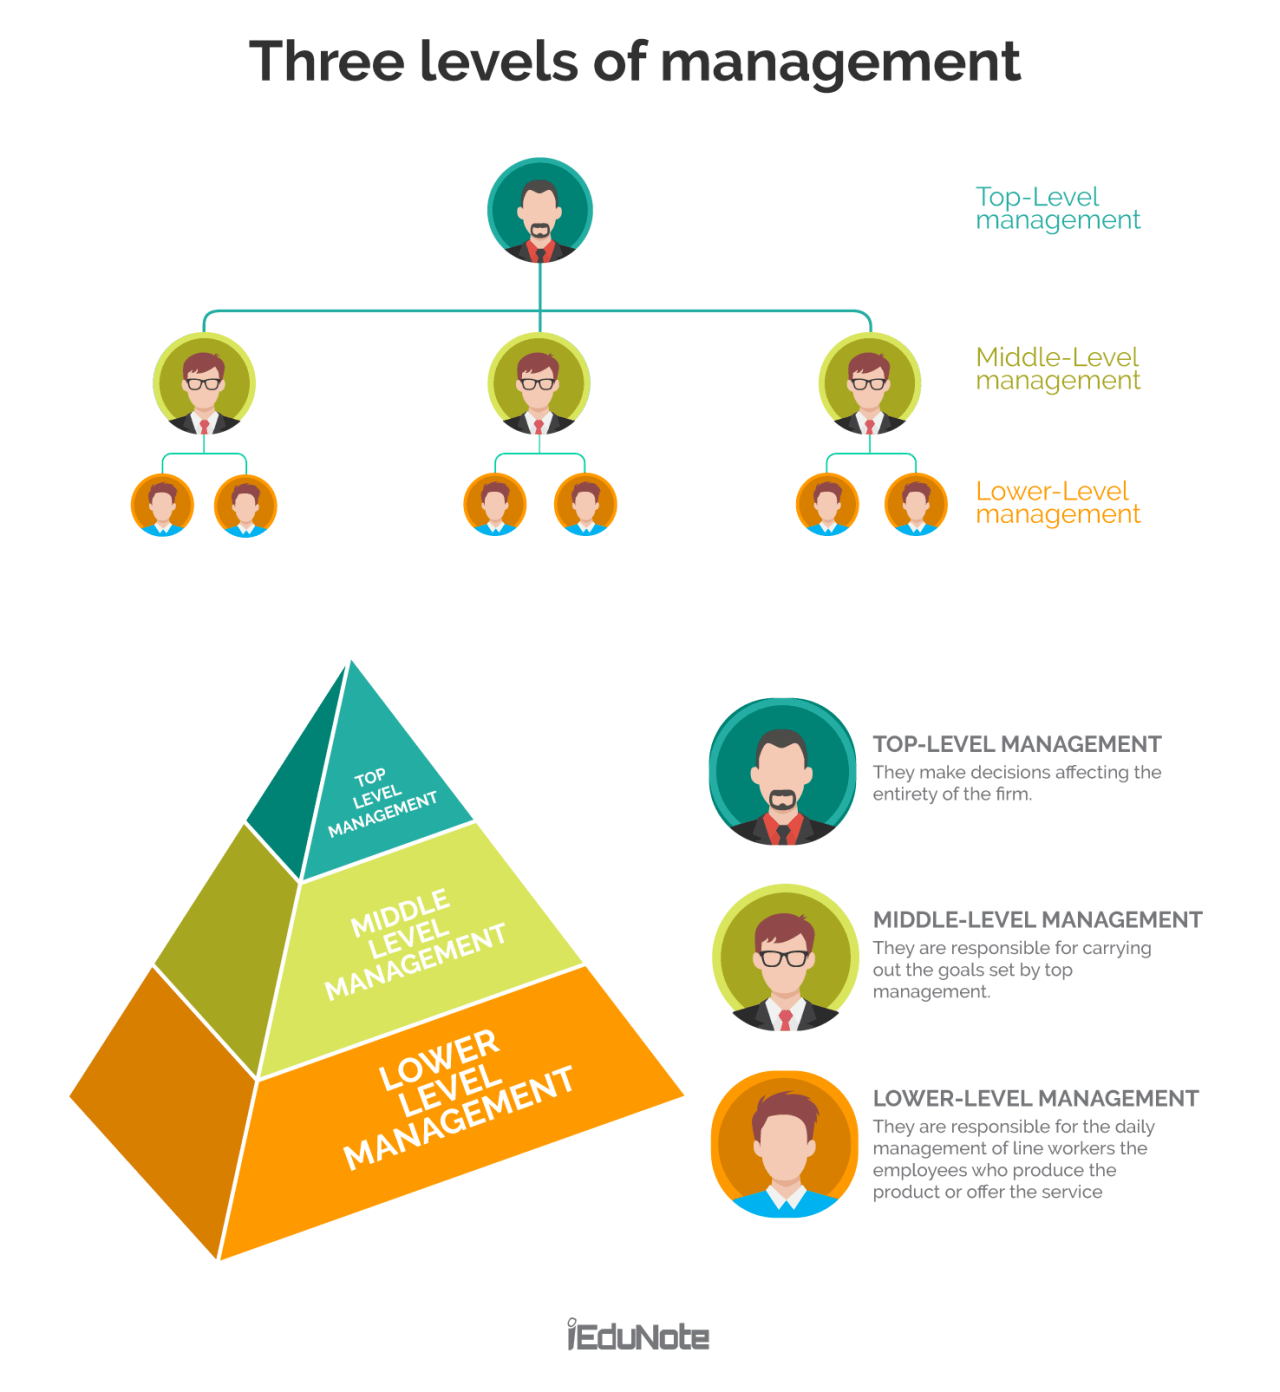 40 Management Levels in Organizational Hierarchy